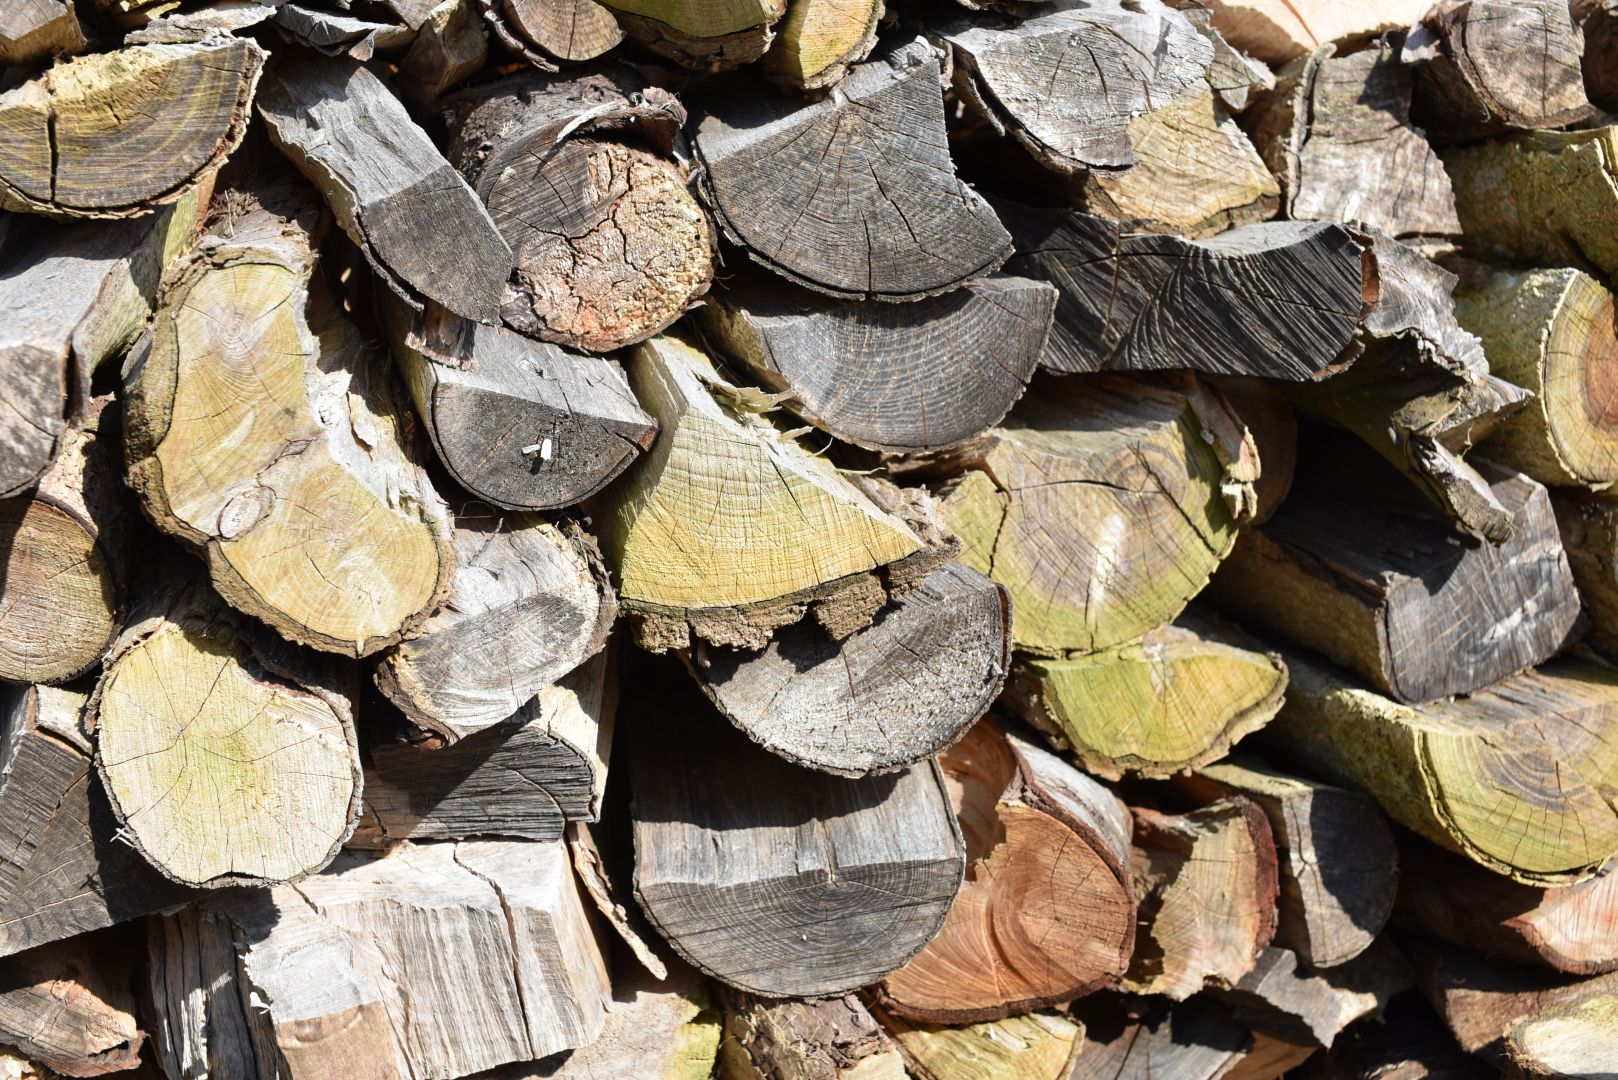 order your logs now, logs, seasoned mixed logs, seasoned hardwood logs, firewood, seasoned logs, seasoned hardwood, weymouth, portland, dorchester,